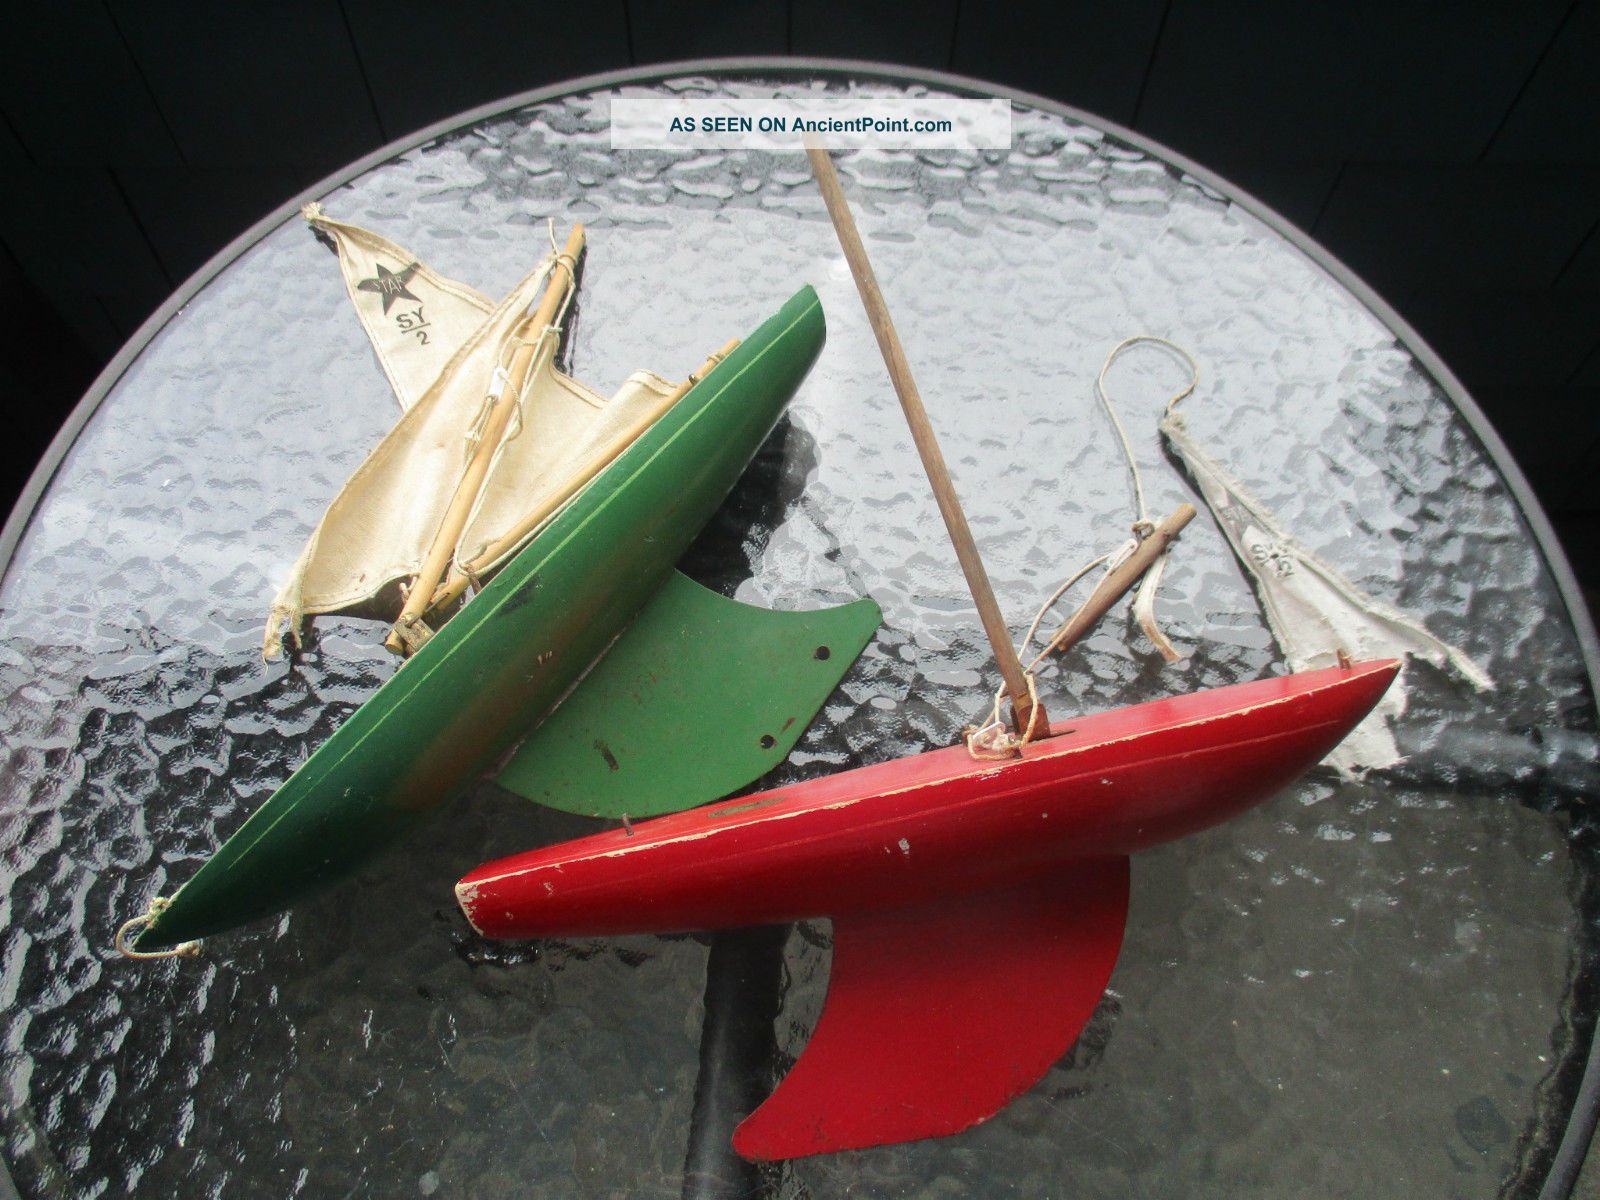 2 Star Yacht Birkenhead Wooden Pond Boats For Restoration England 12 Inch Sy/2 Model Ships photo